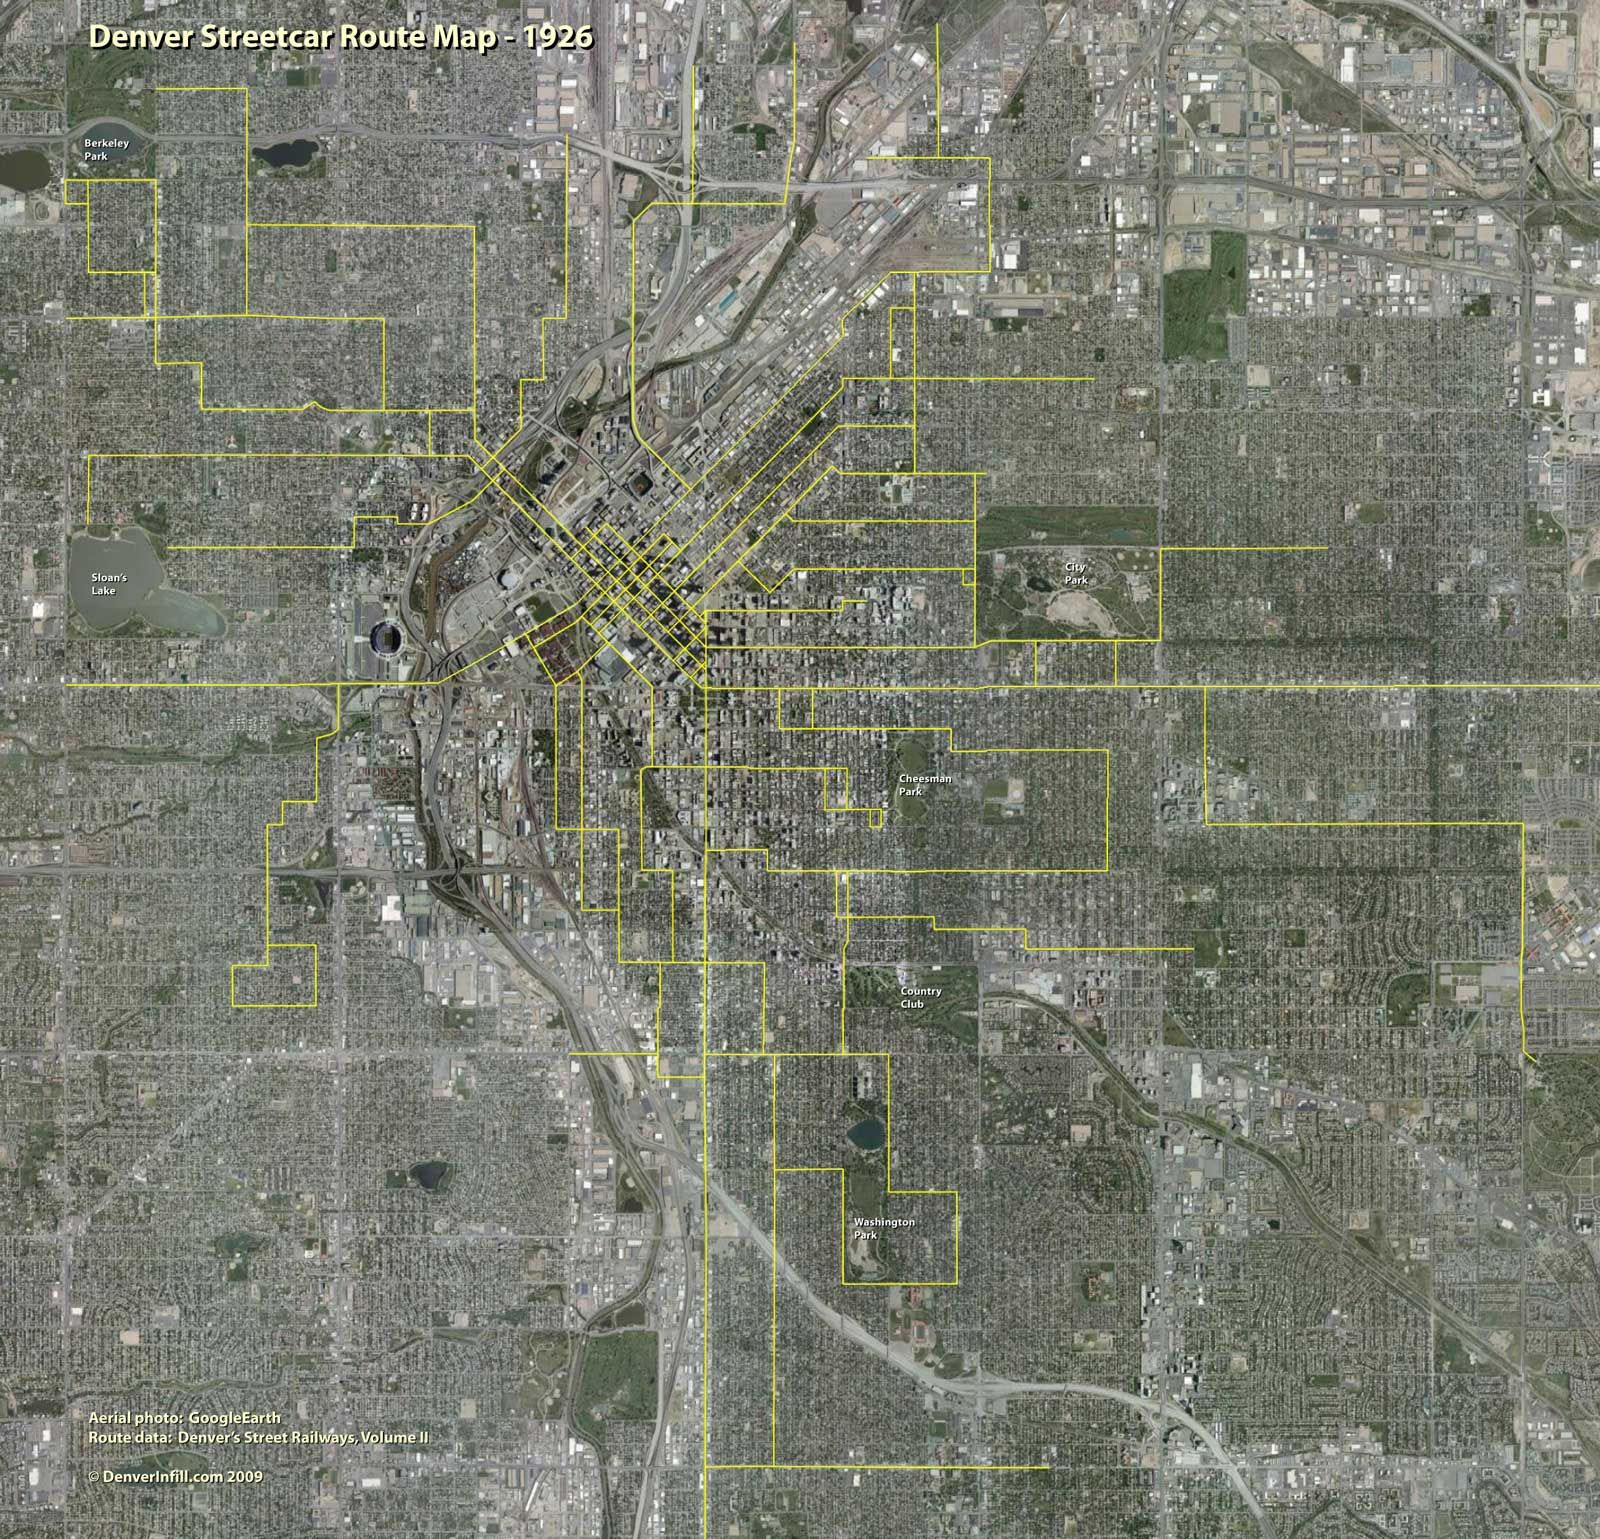 Denver Streetcar Map Overlaid On A Modern Aerial Photo All - Historical aerial maps